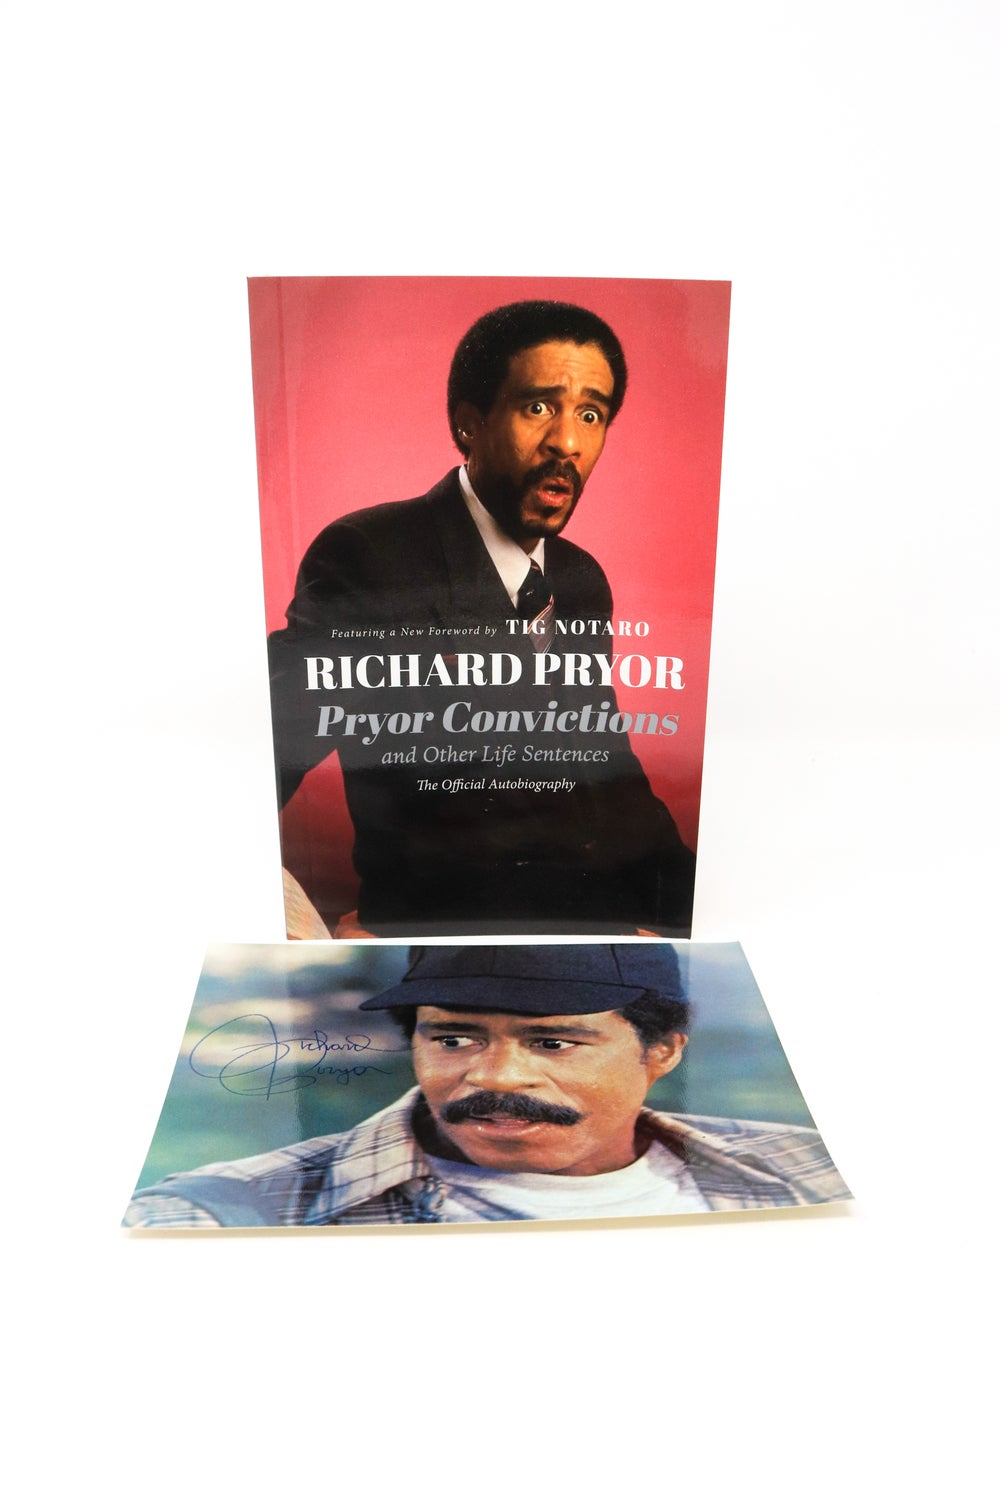 Richard Pryor - Pryor Convictions Autobiography Book